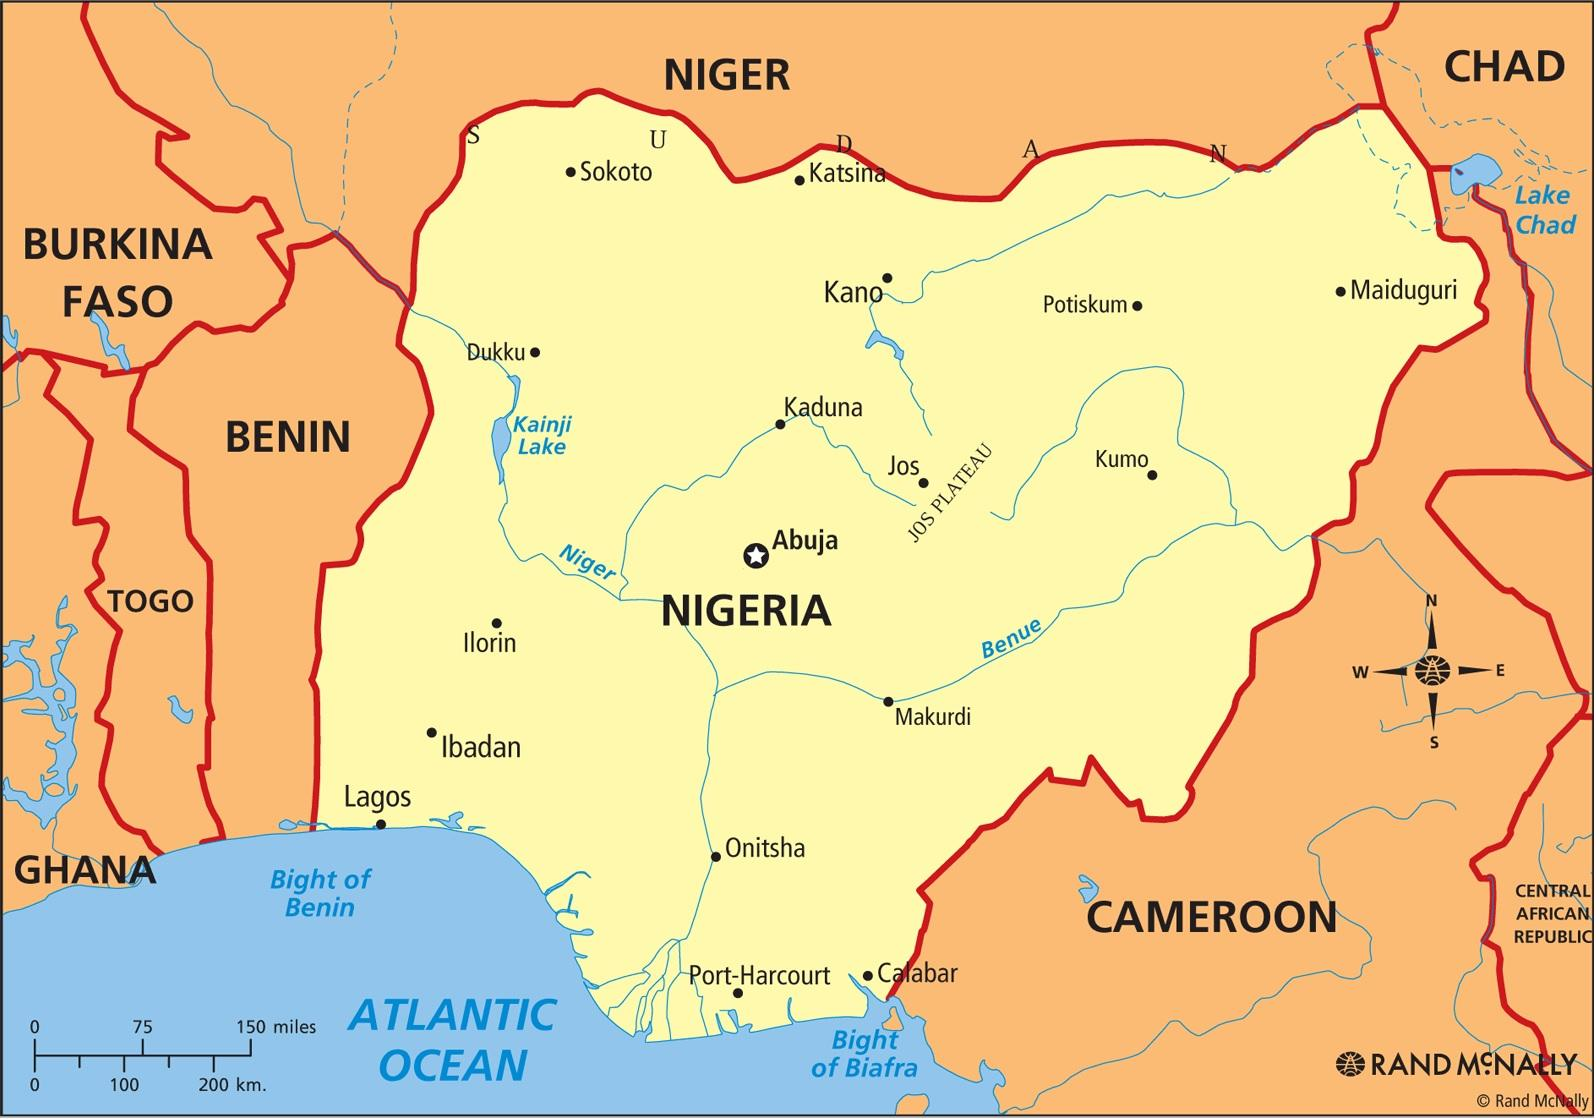 Benue River Africa Map.Map Of Nigeria Showing River Niger And River Benue Map Of Nigeria